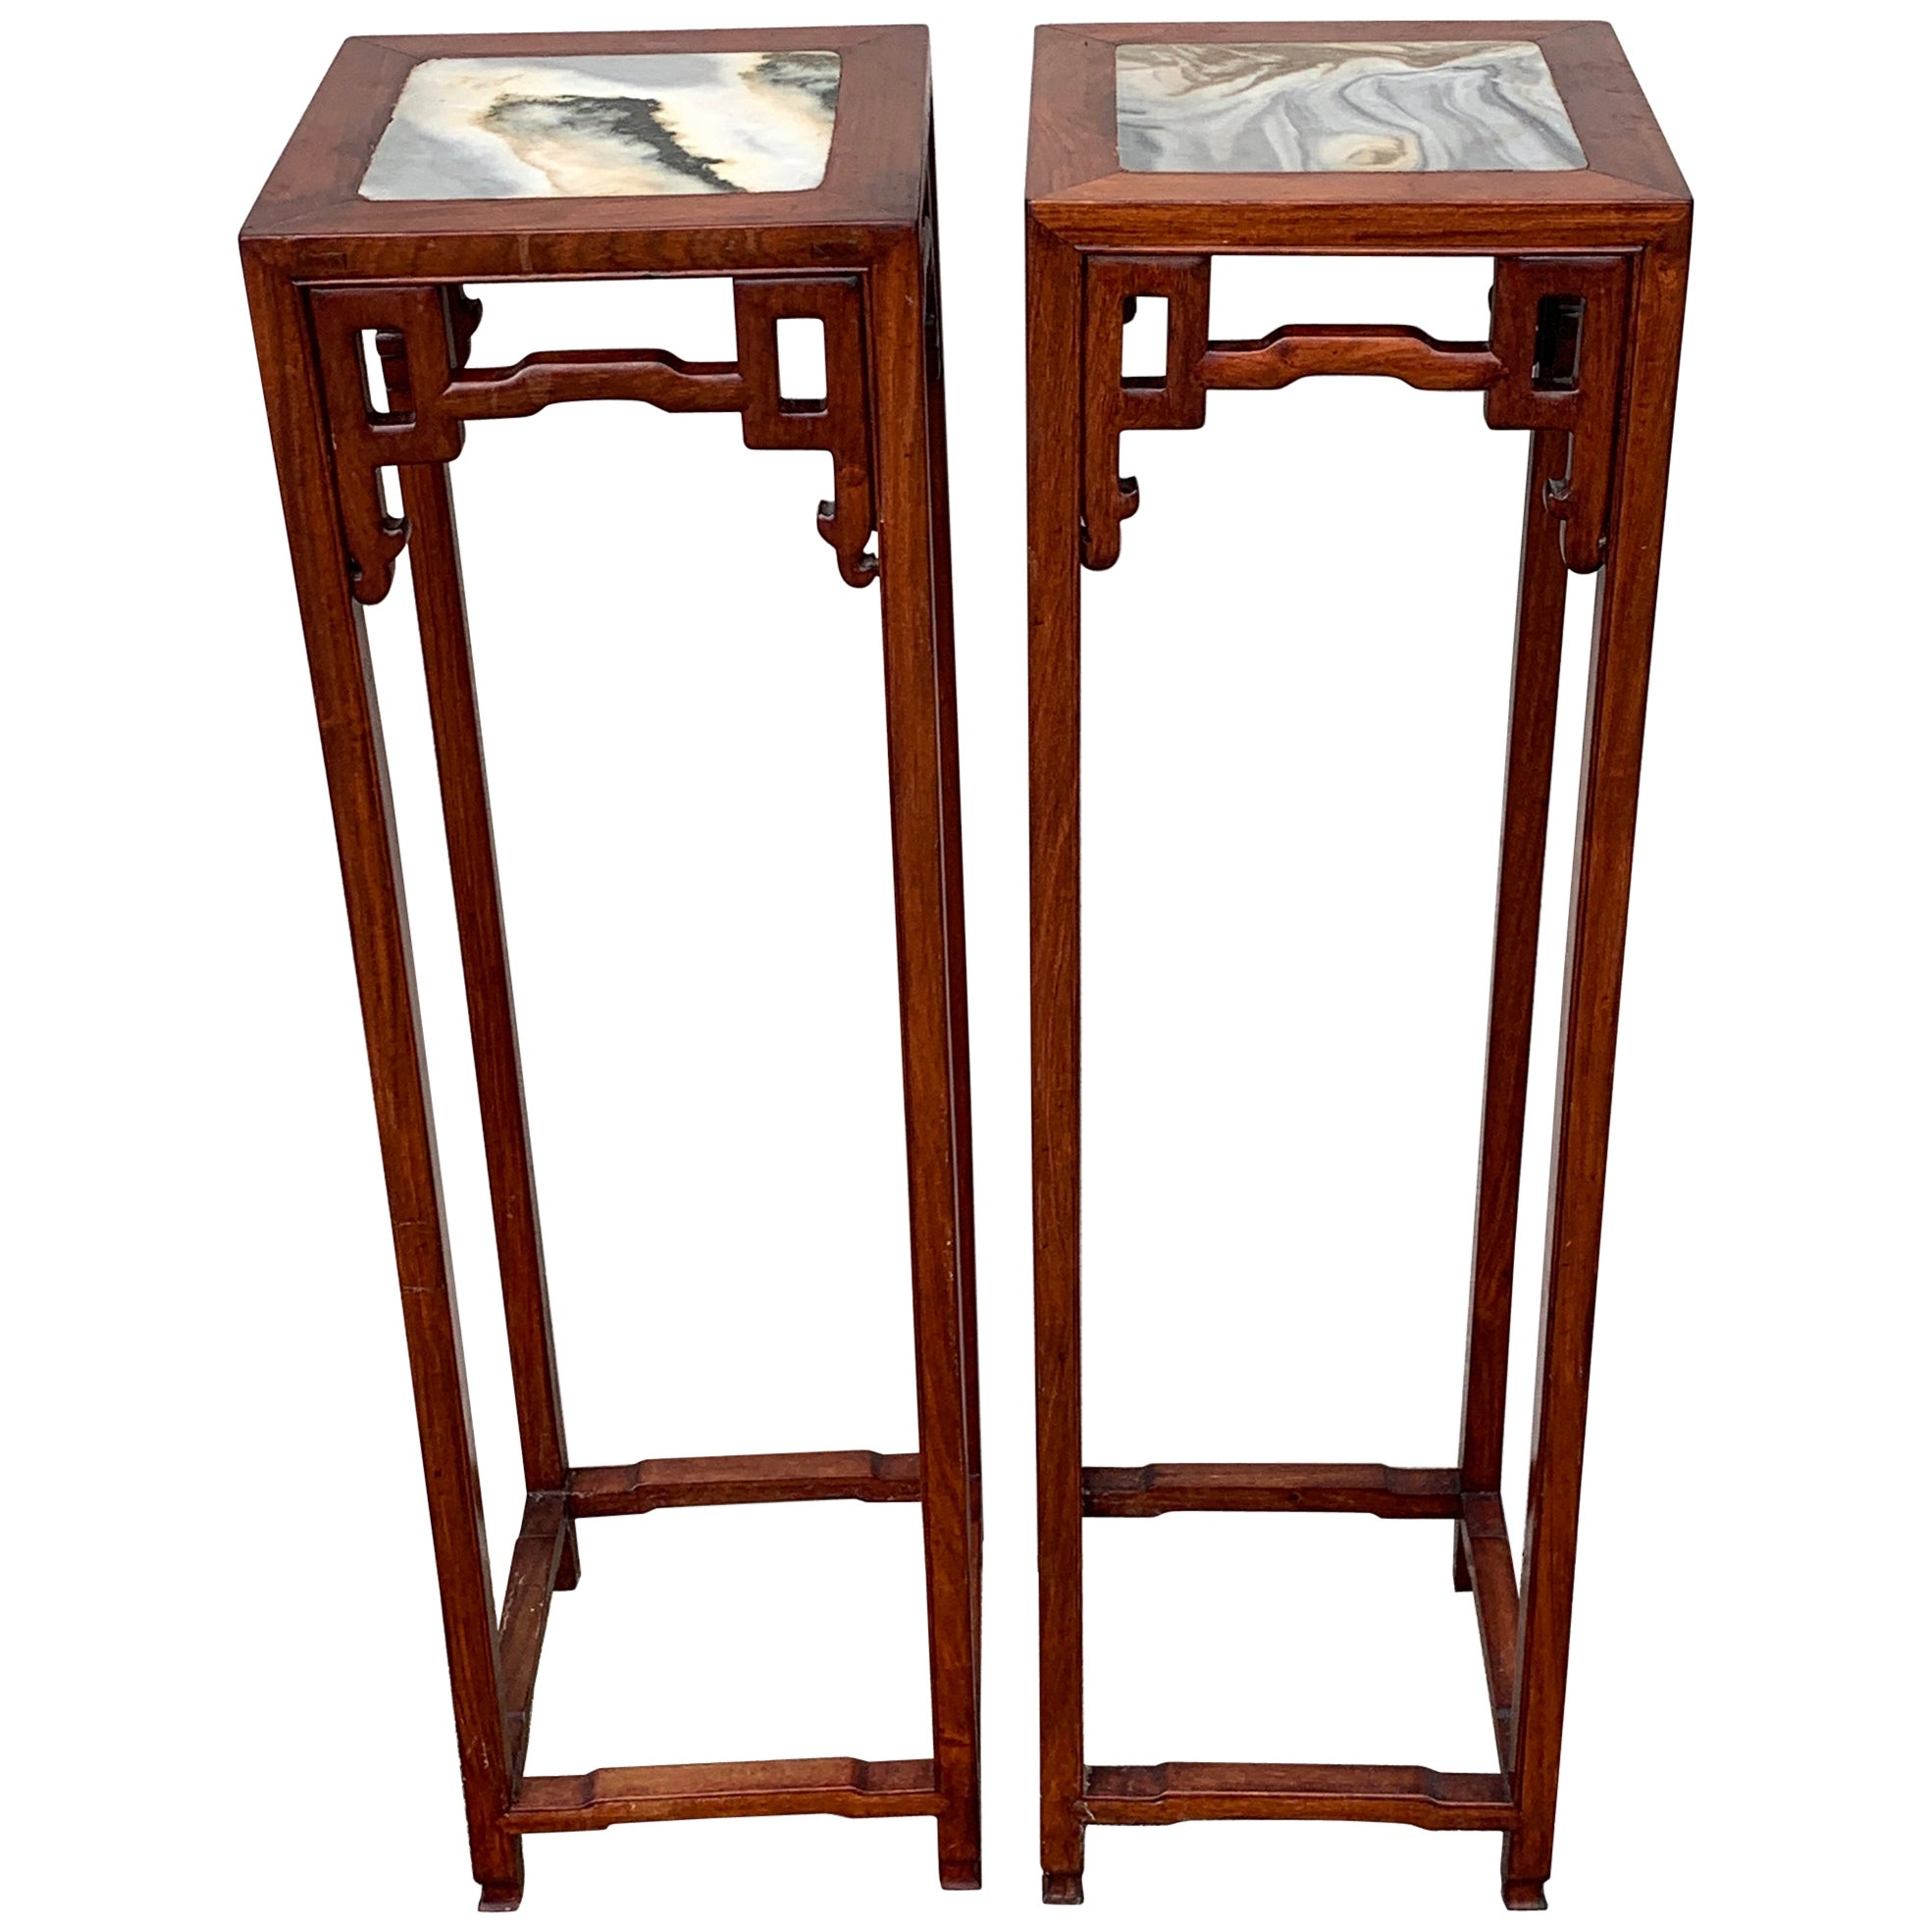 Pair of Chinese Export Hardwood and Marble Pedestals